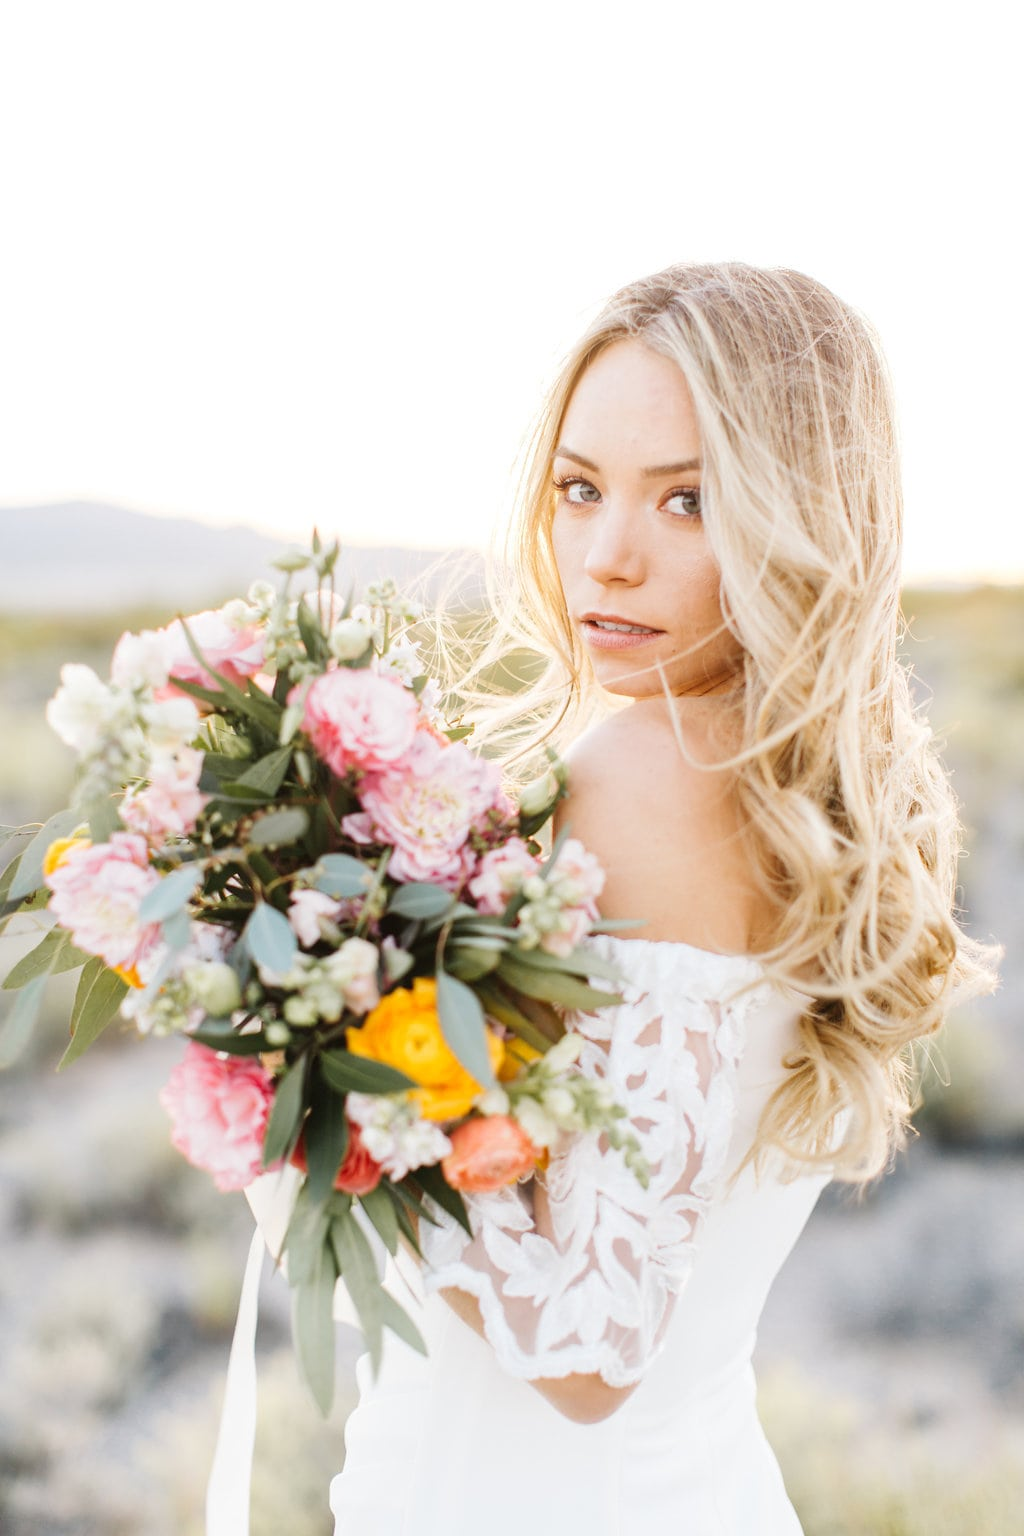 Boho Bridal Shoot | Credit: Julia Stockton Photography